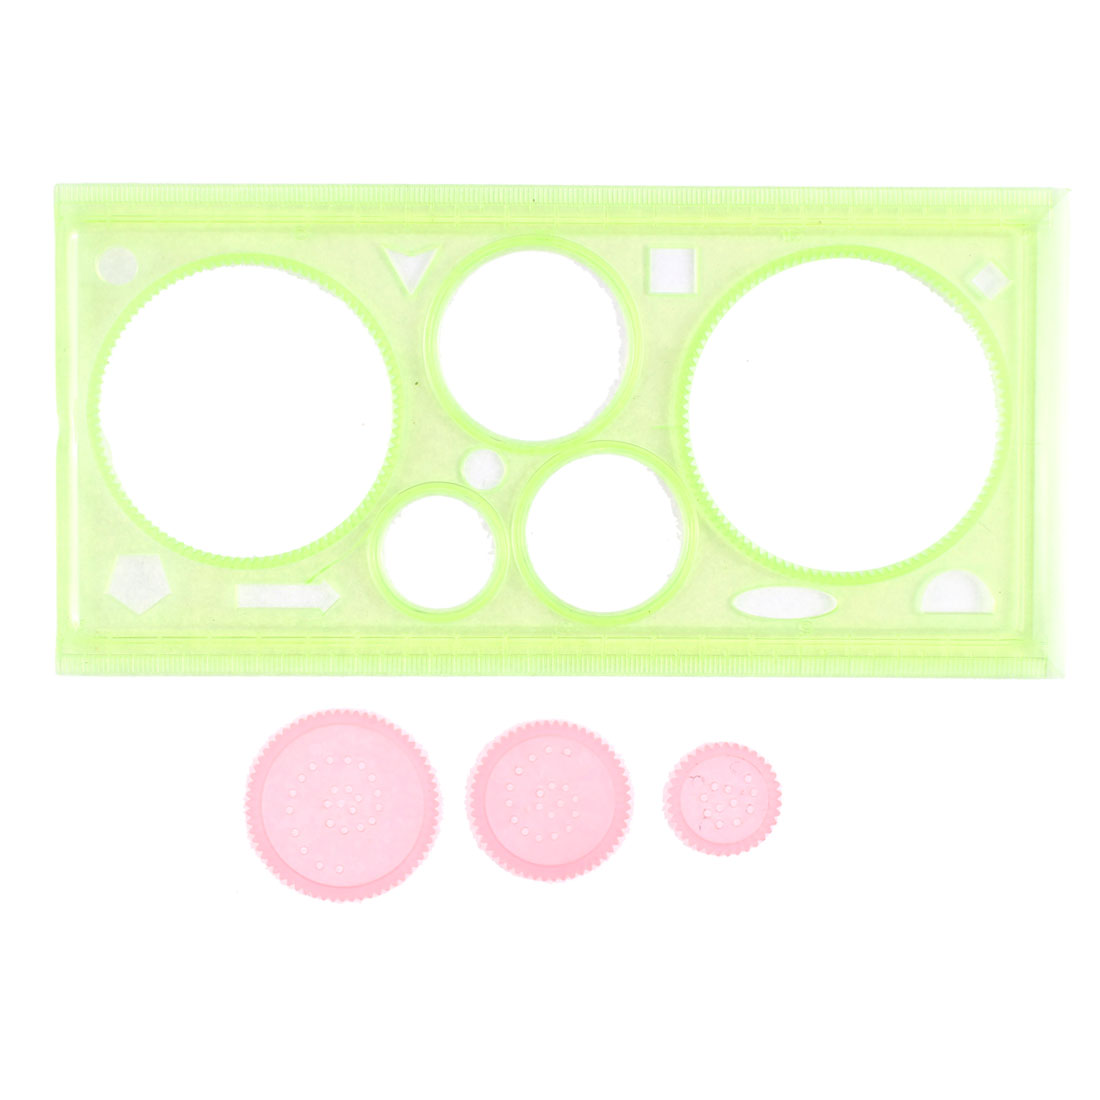 Round Ellipse Square Triangle Drafting Drawing Stencil Templates Ruler Green